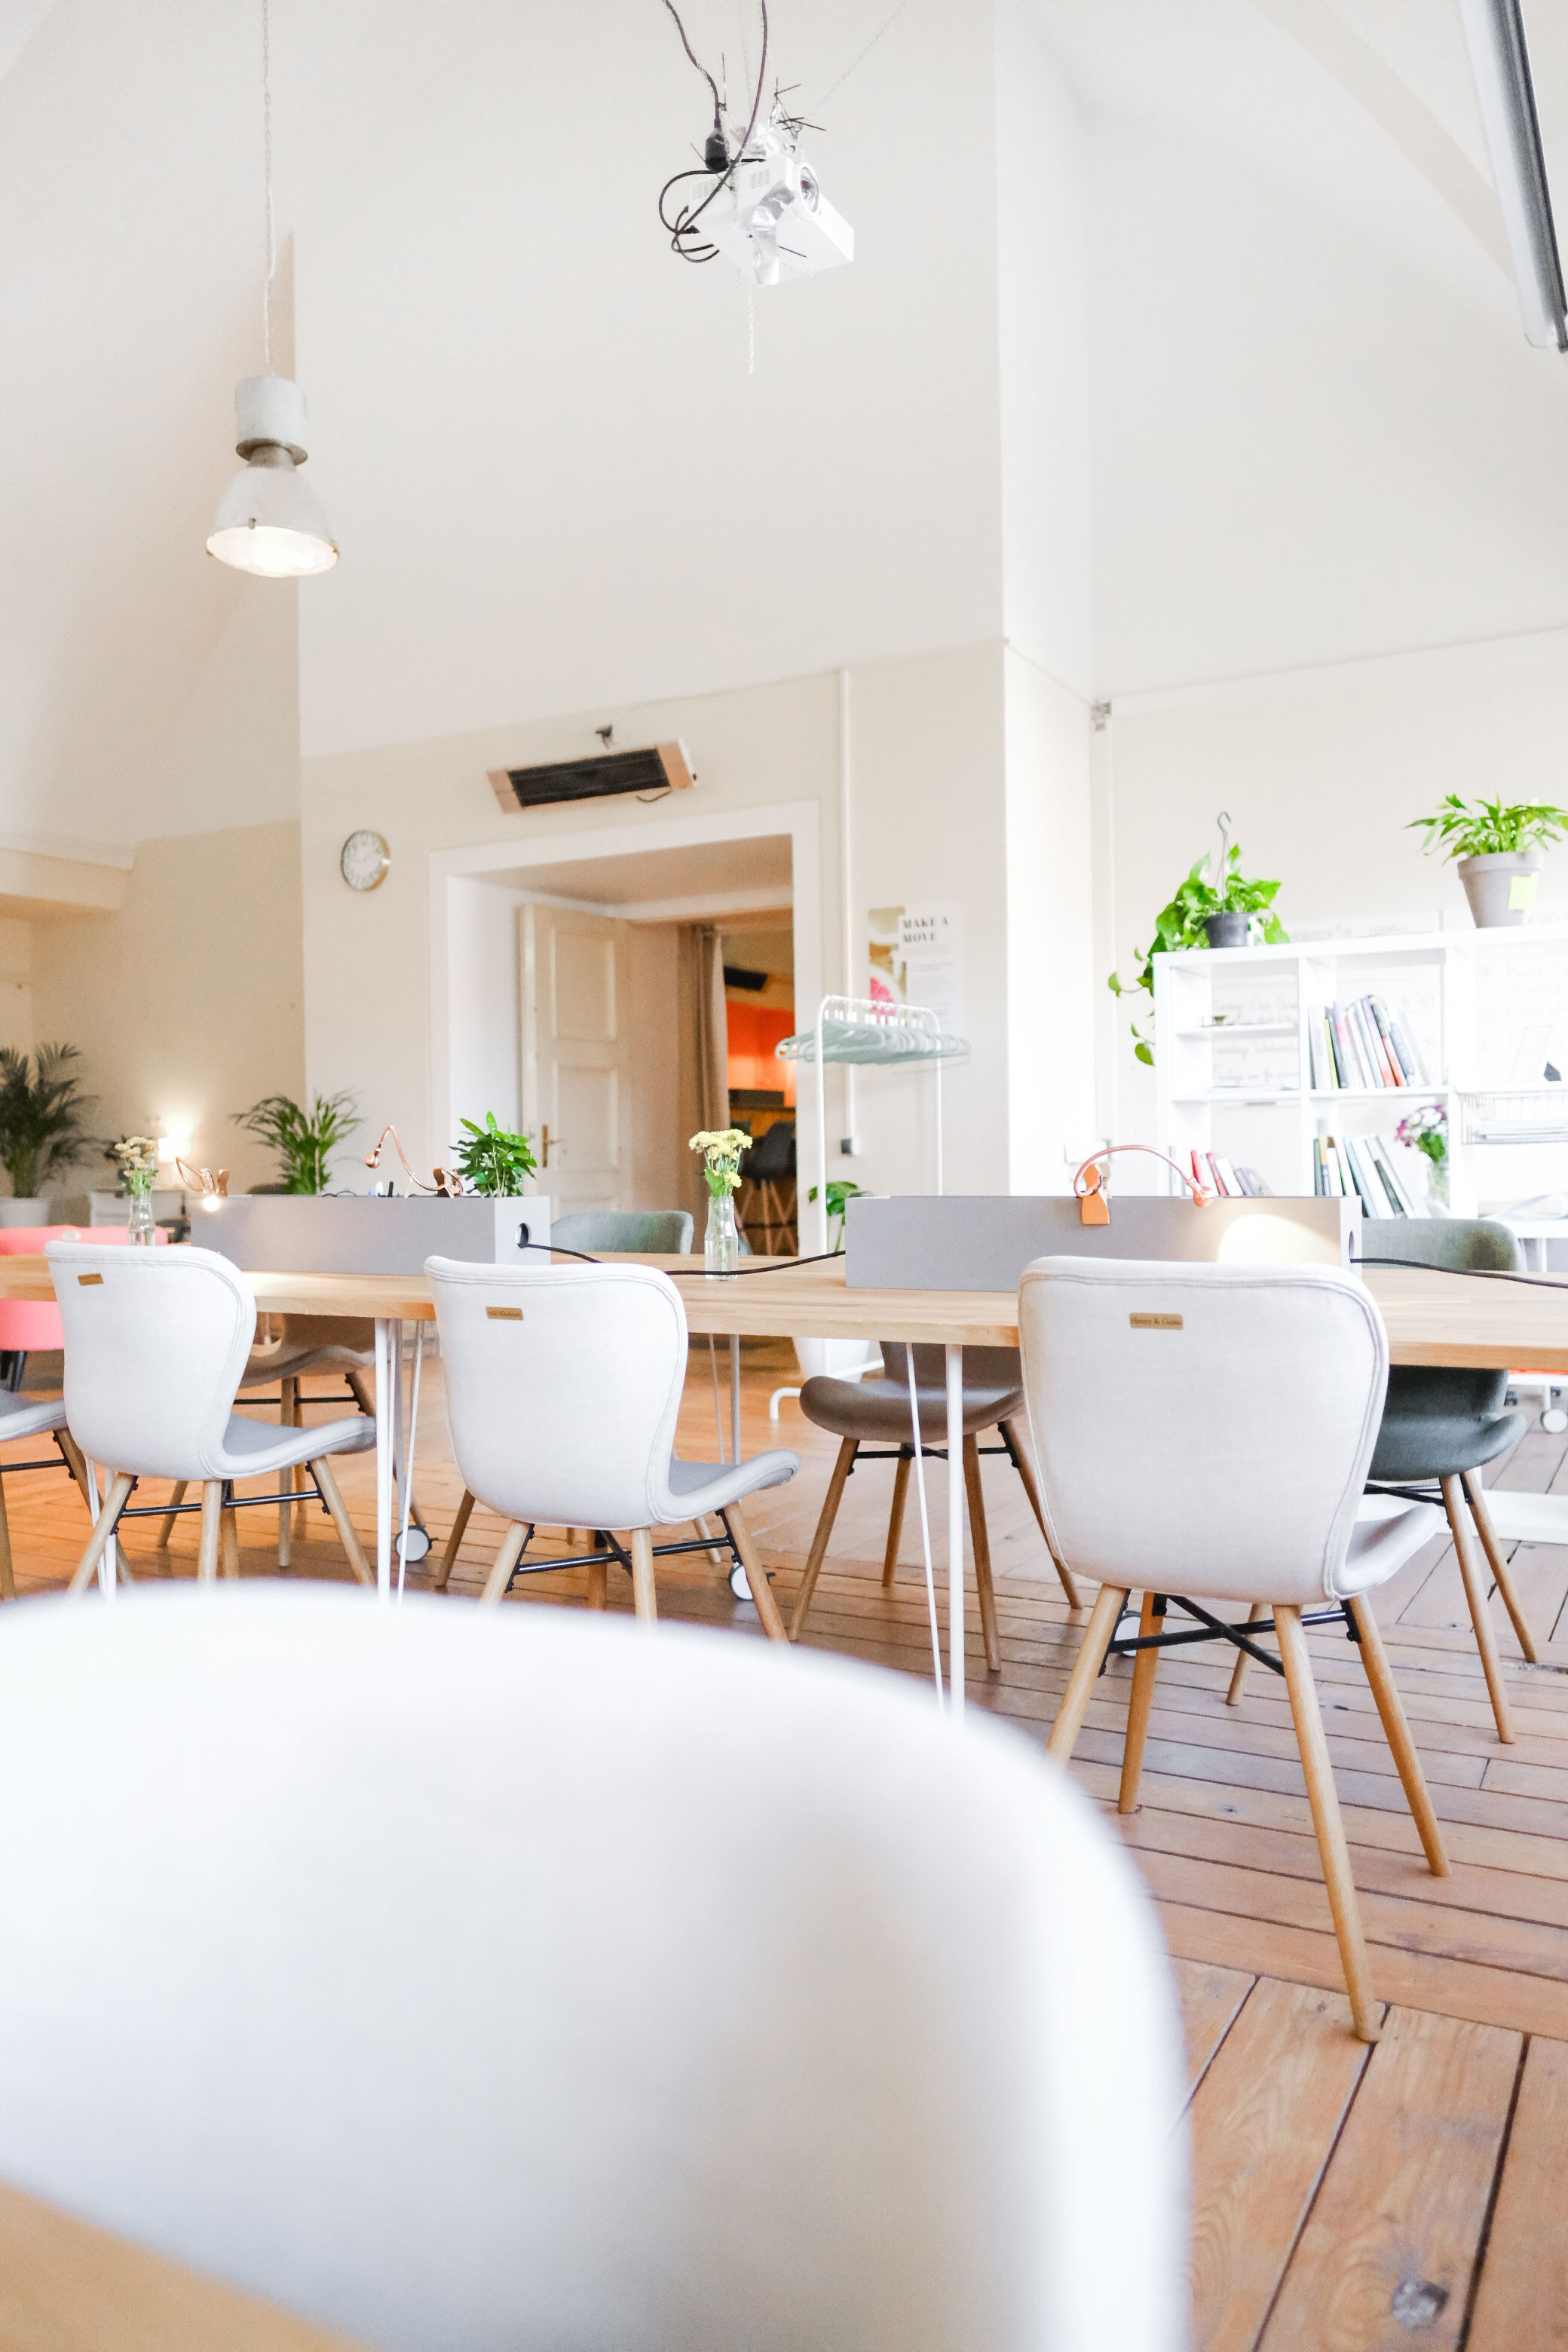 Coworking Space for Business Mastermind Session – Stephanie Pellett Creative